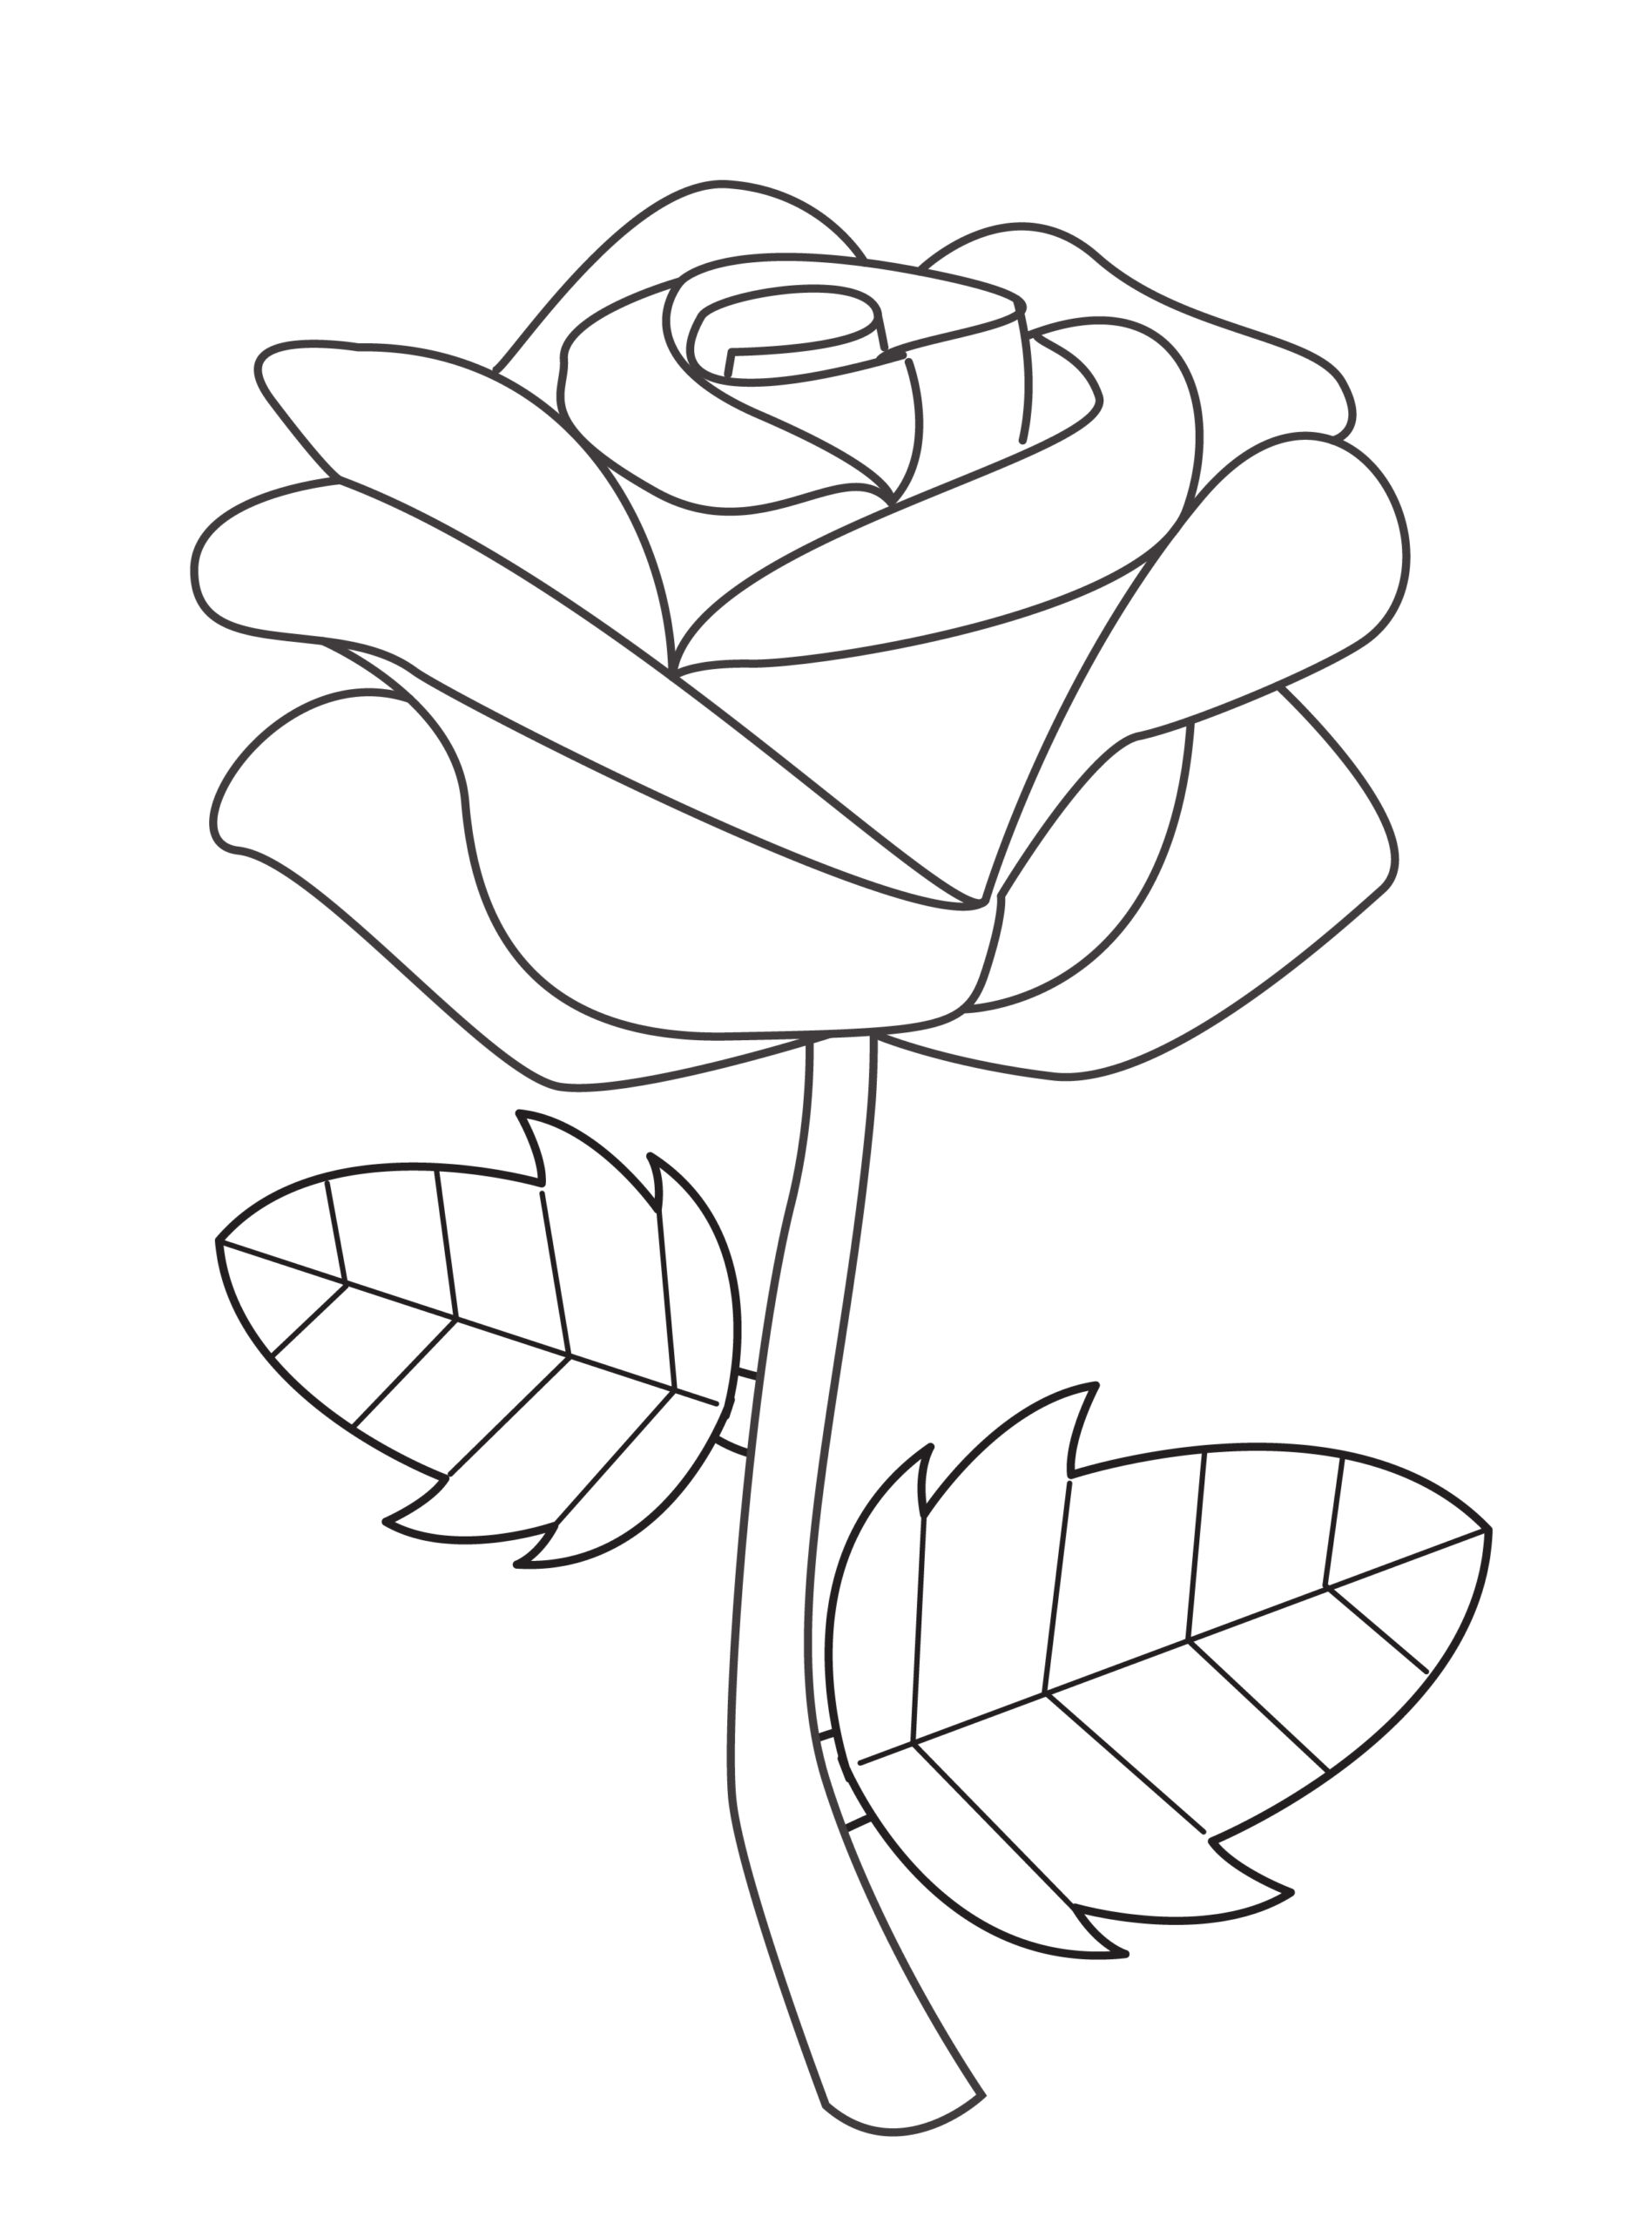 Printable rose template for summer template crafts for kids, preschoolers and toddlers